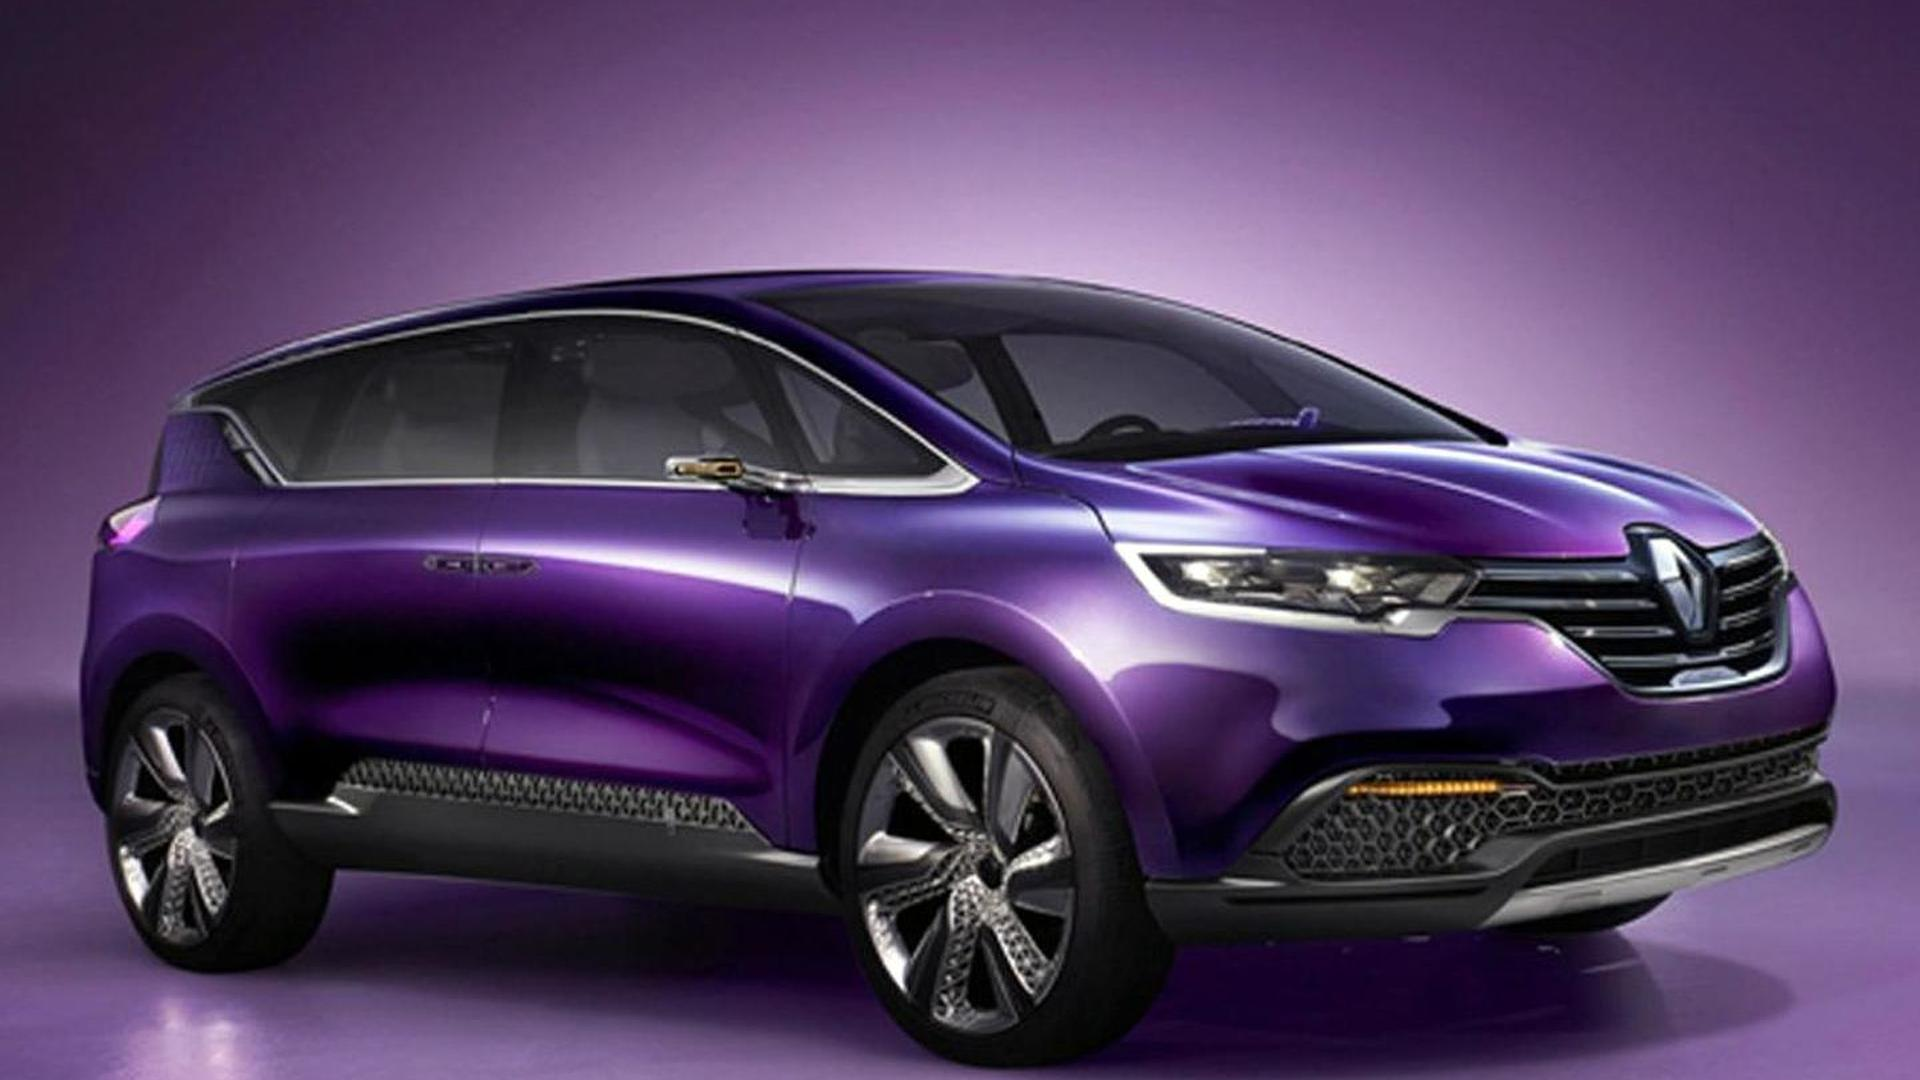 Renault working on hybrids, first one could arrive by 2020 - report